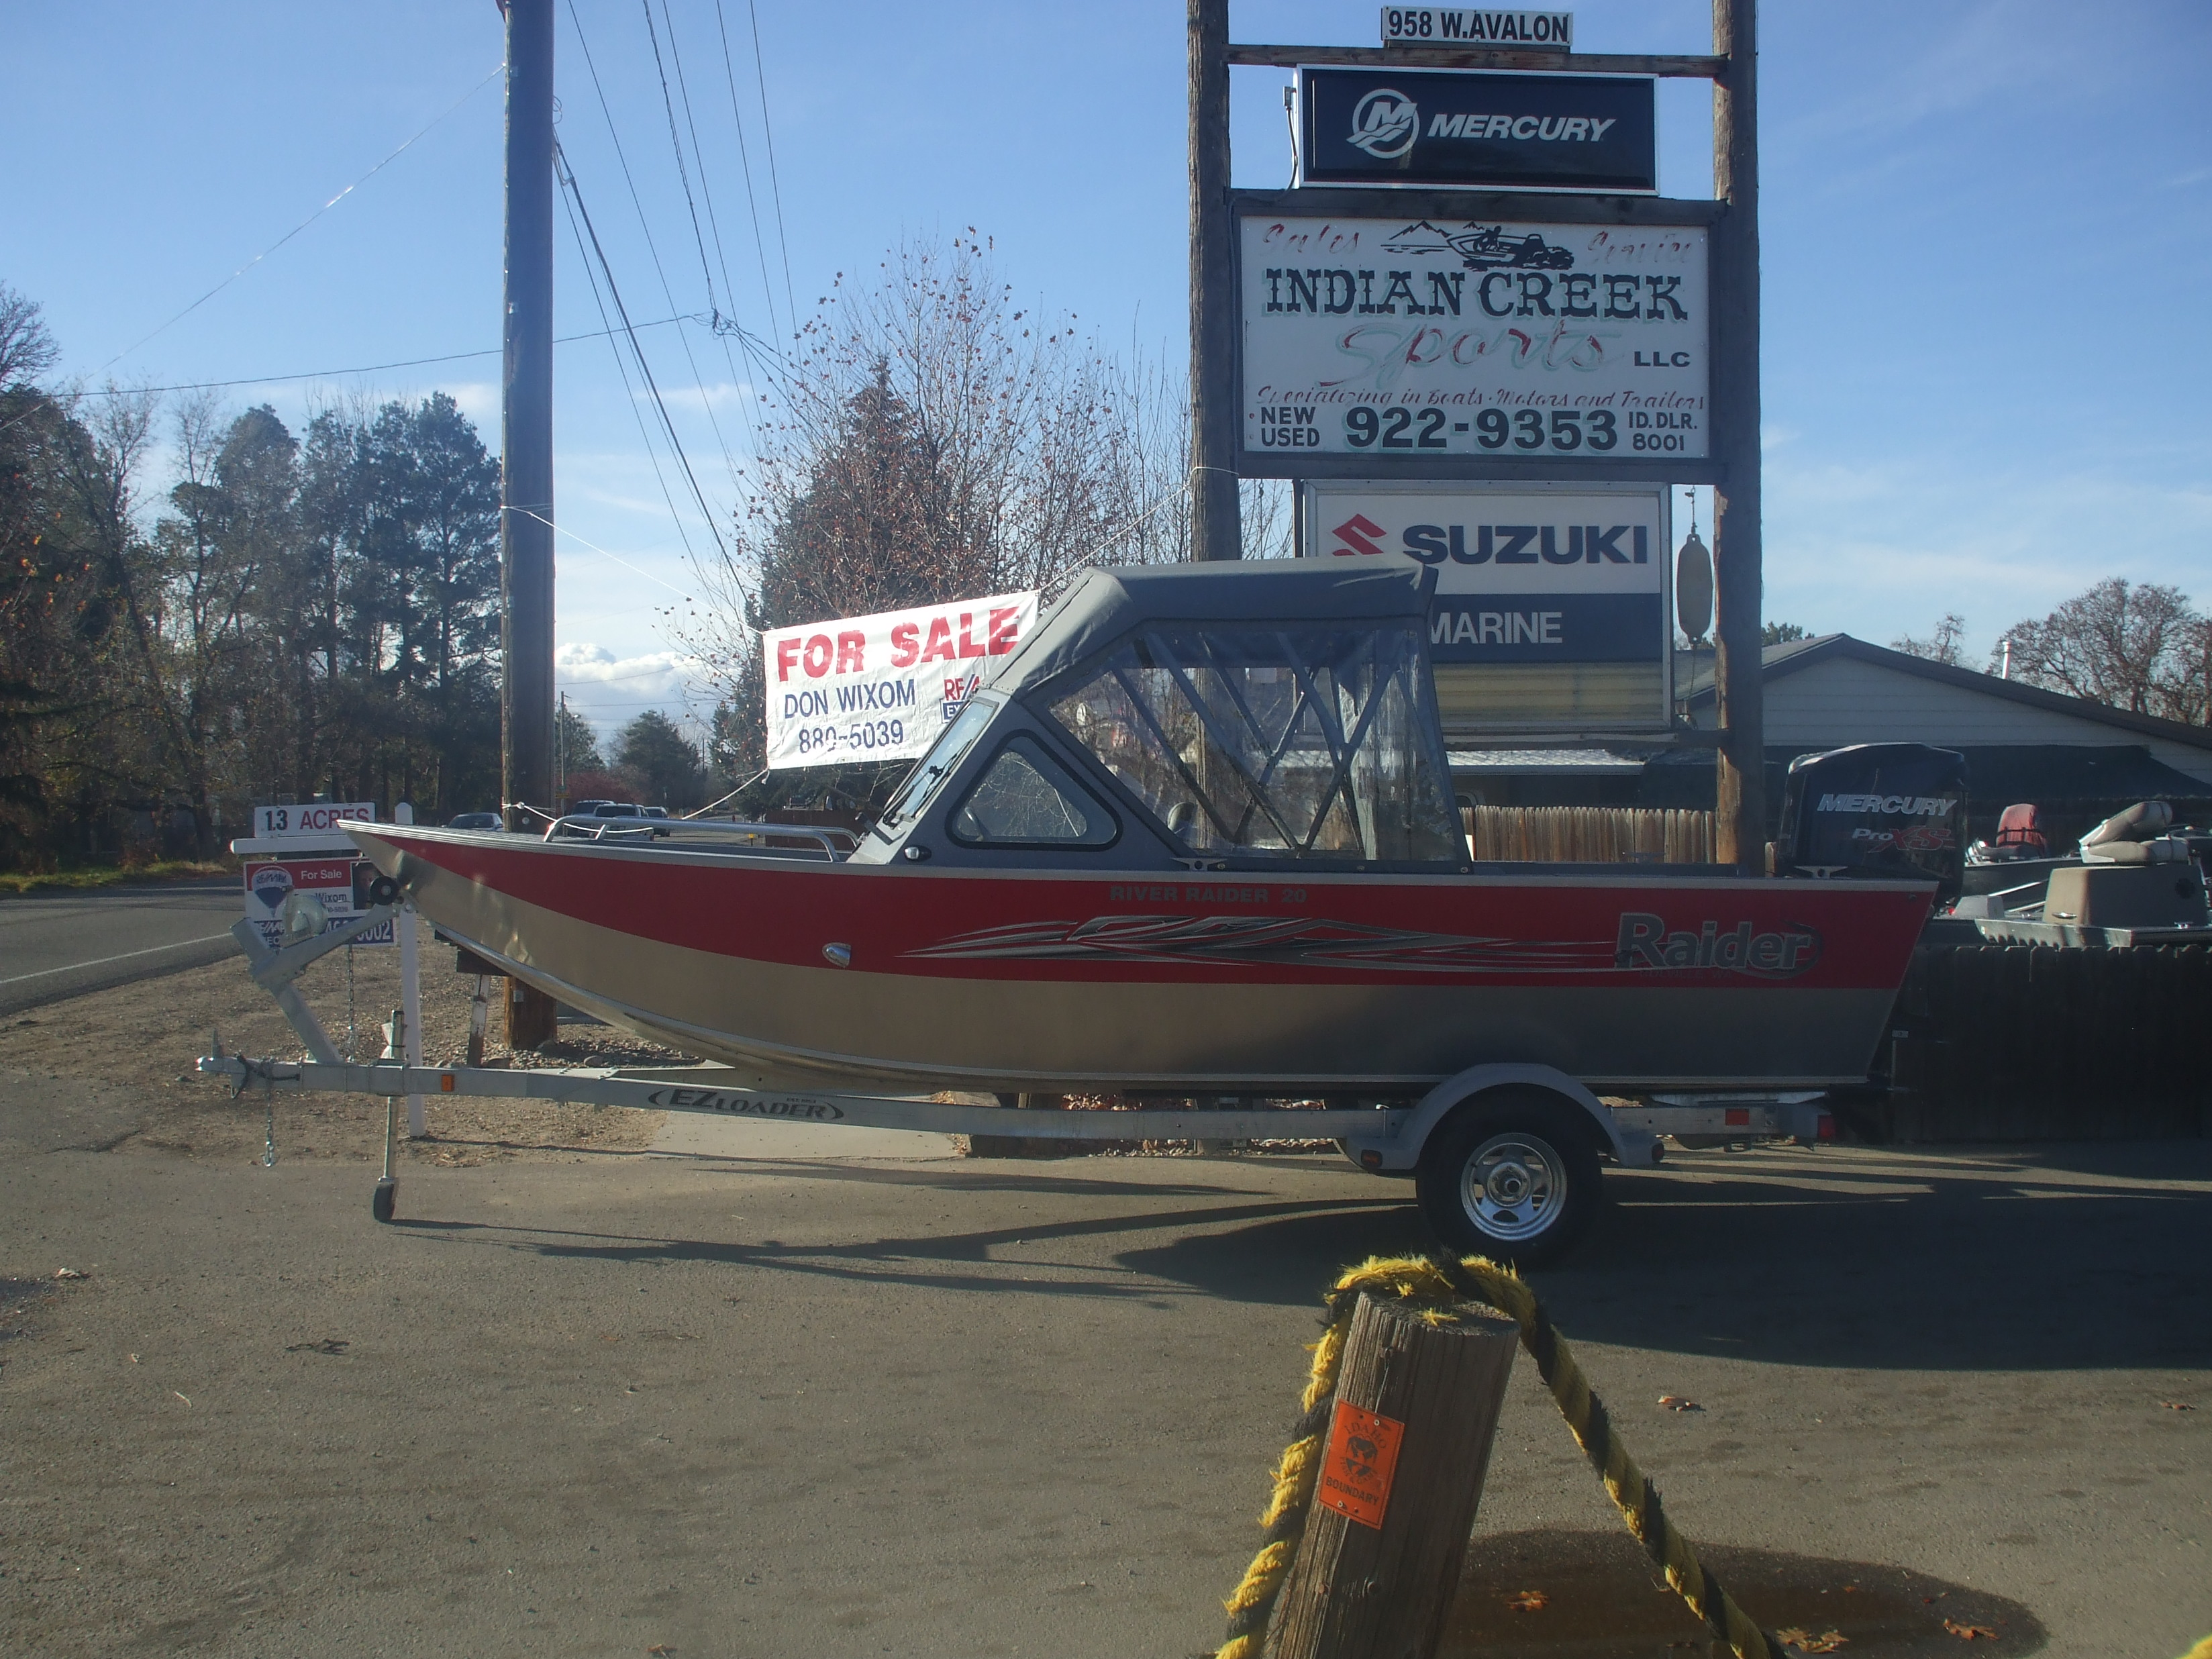 2017 20ft River Raider boat  Red and Charcoal